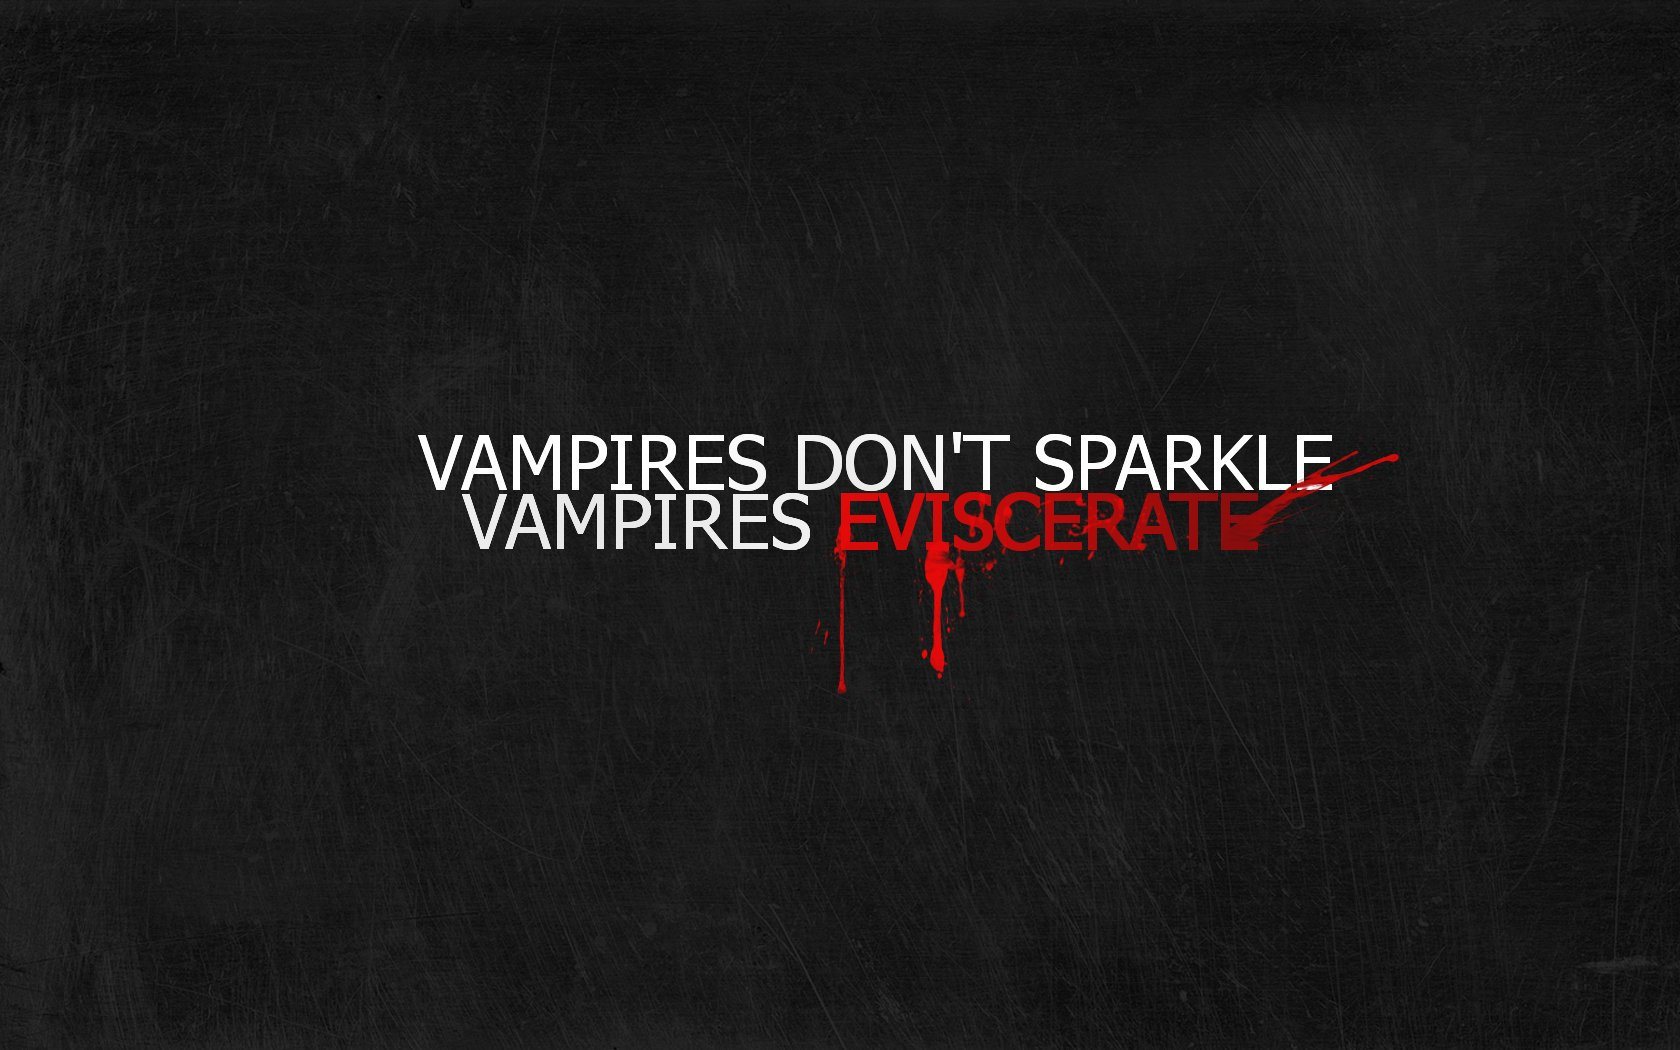 Twilight quotes vampires wallpaper 1680x1050 280110 ...